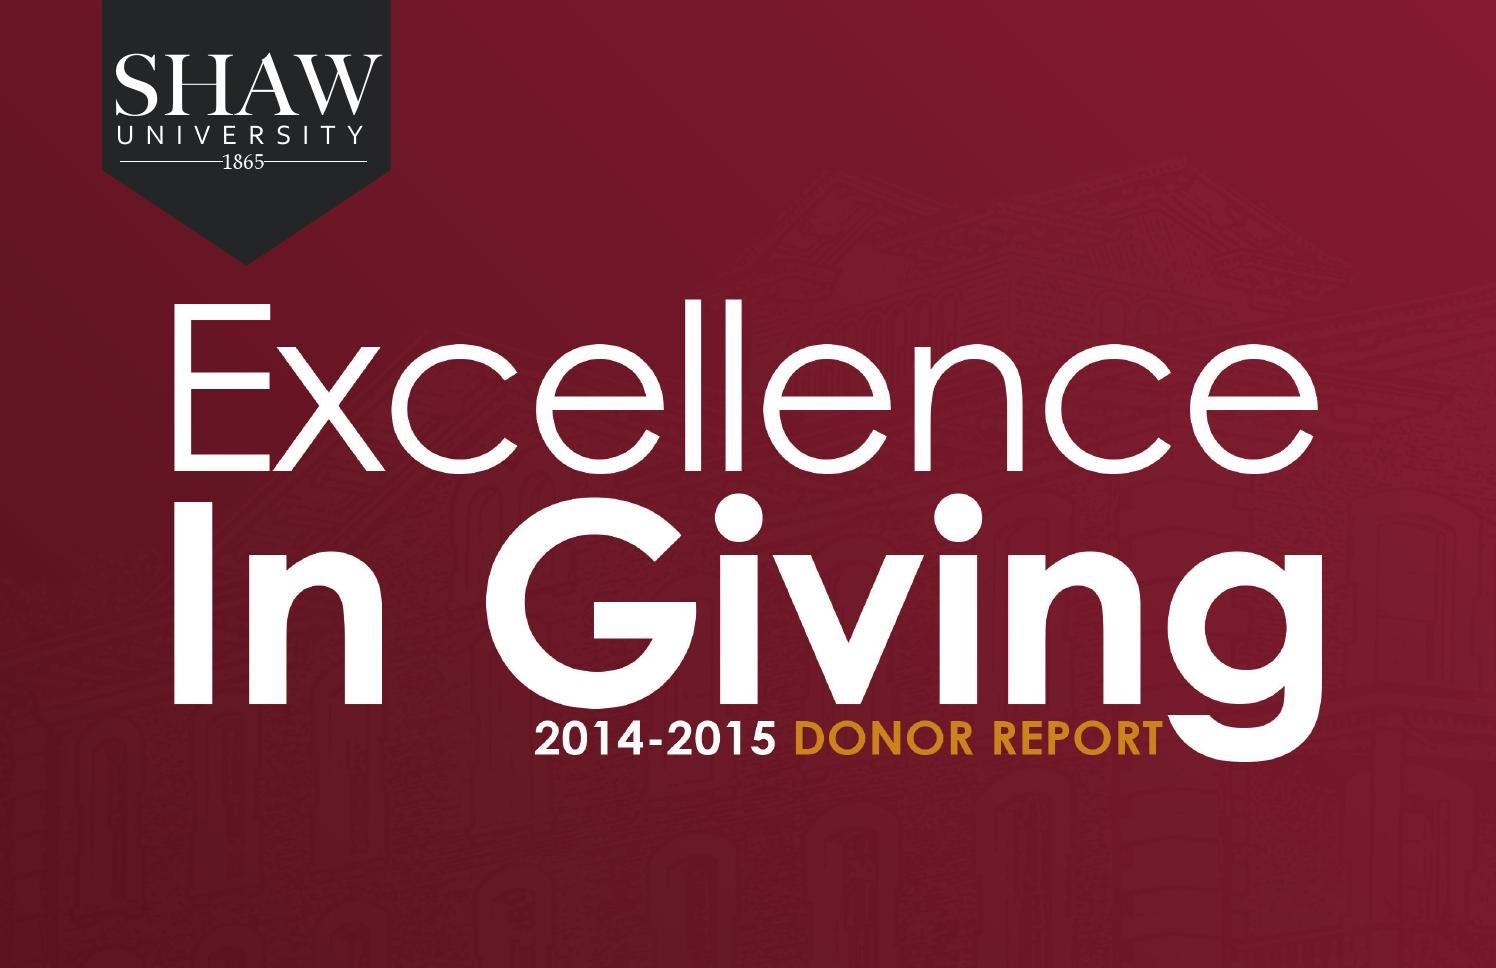 2014 15 Donor Report By Shaw University Issuu The leading real estate marketplace. issuu